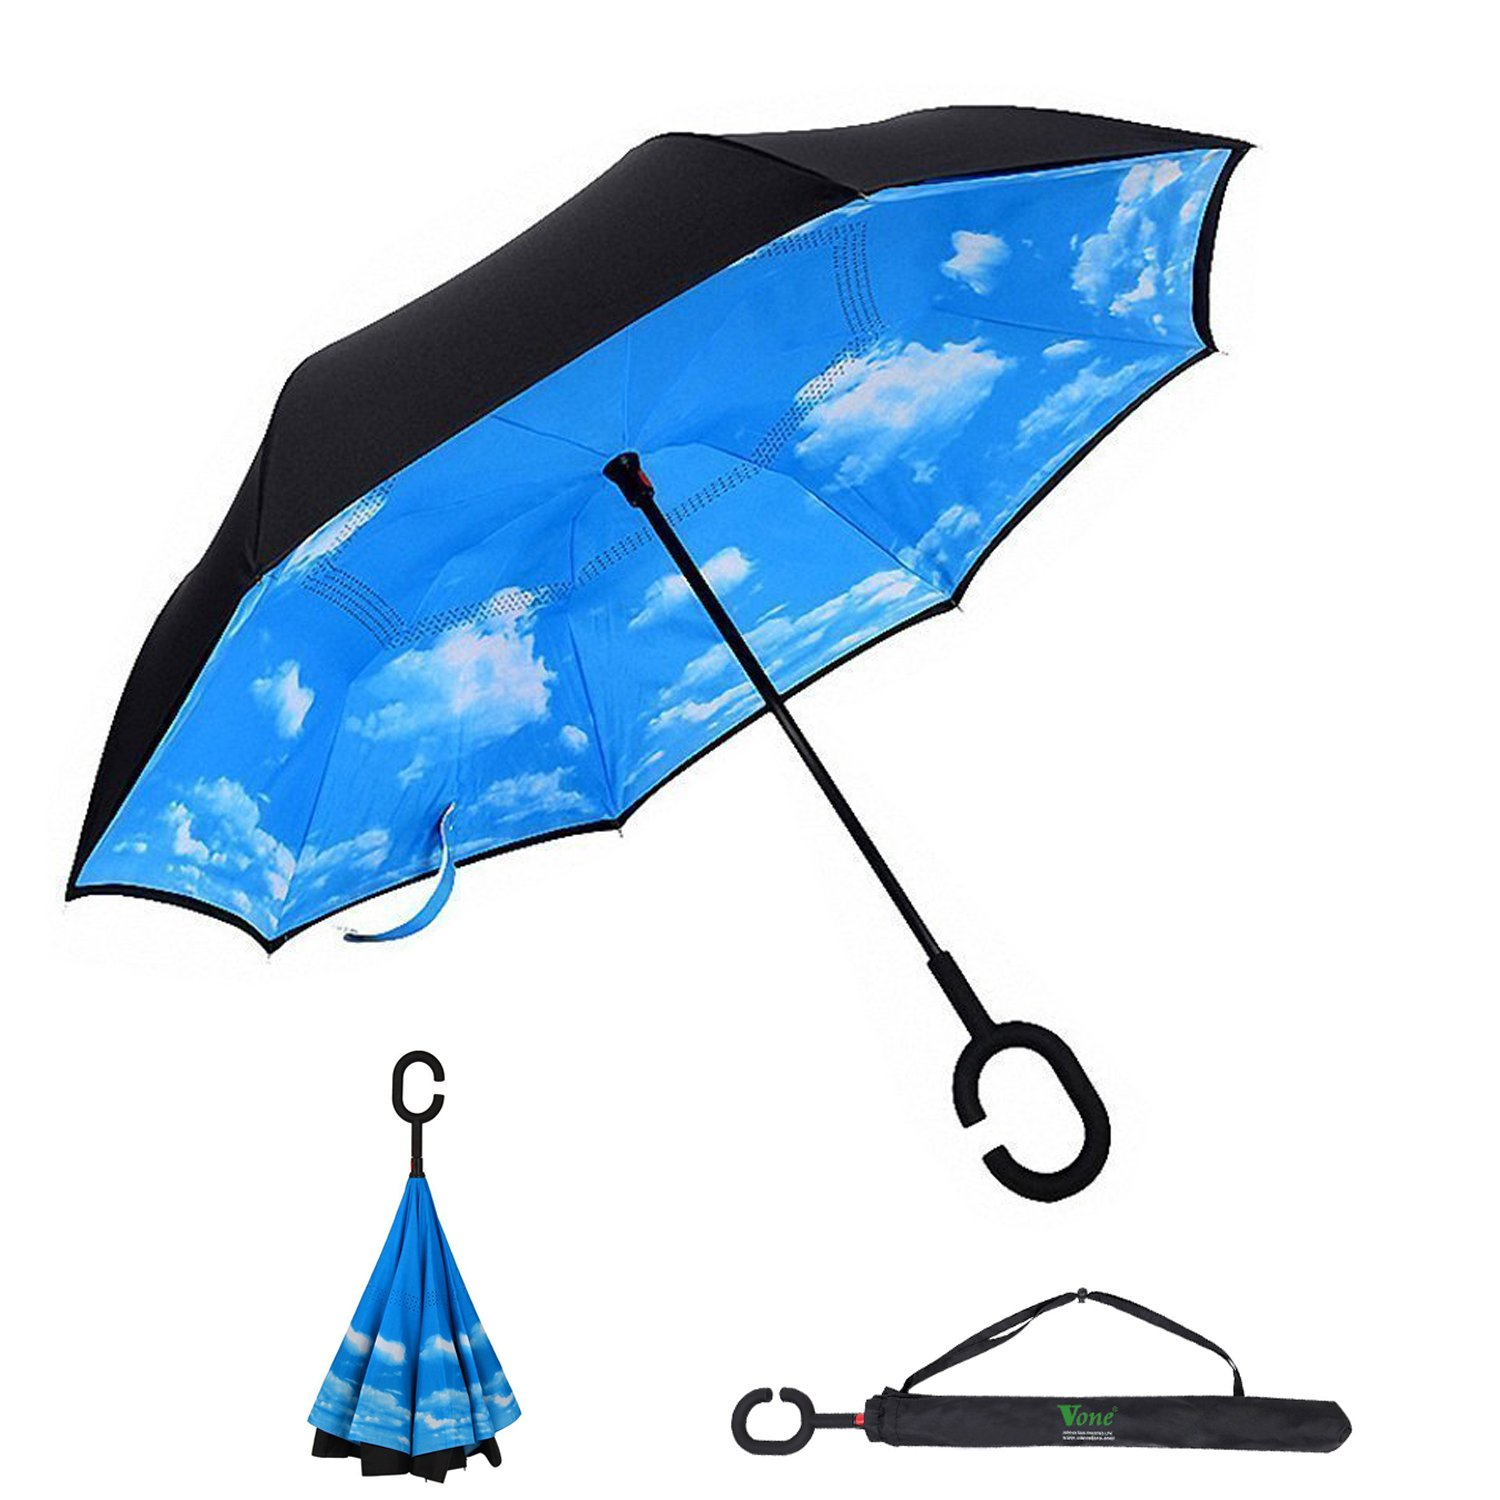 V one Heavy Duty Double Layer Inverted Umbrella C-shaped Handle Windproof  UV Protection Waterproof Stand Self with Carry Bag for Women Men Car  Outdoor